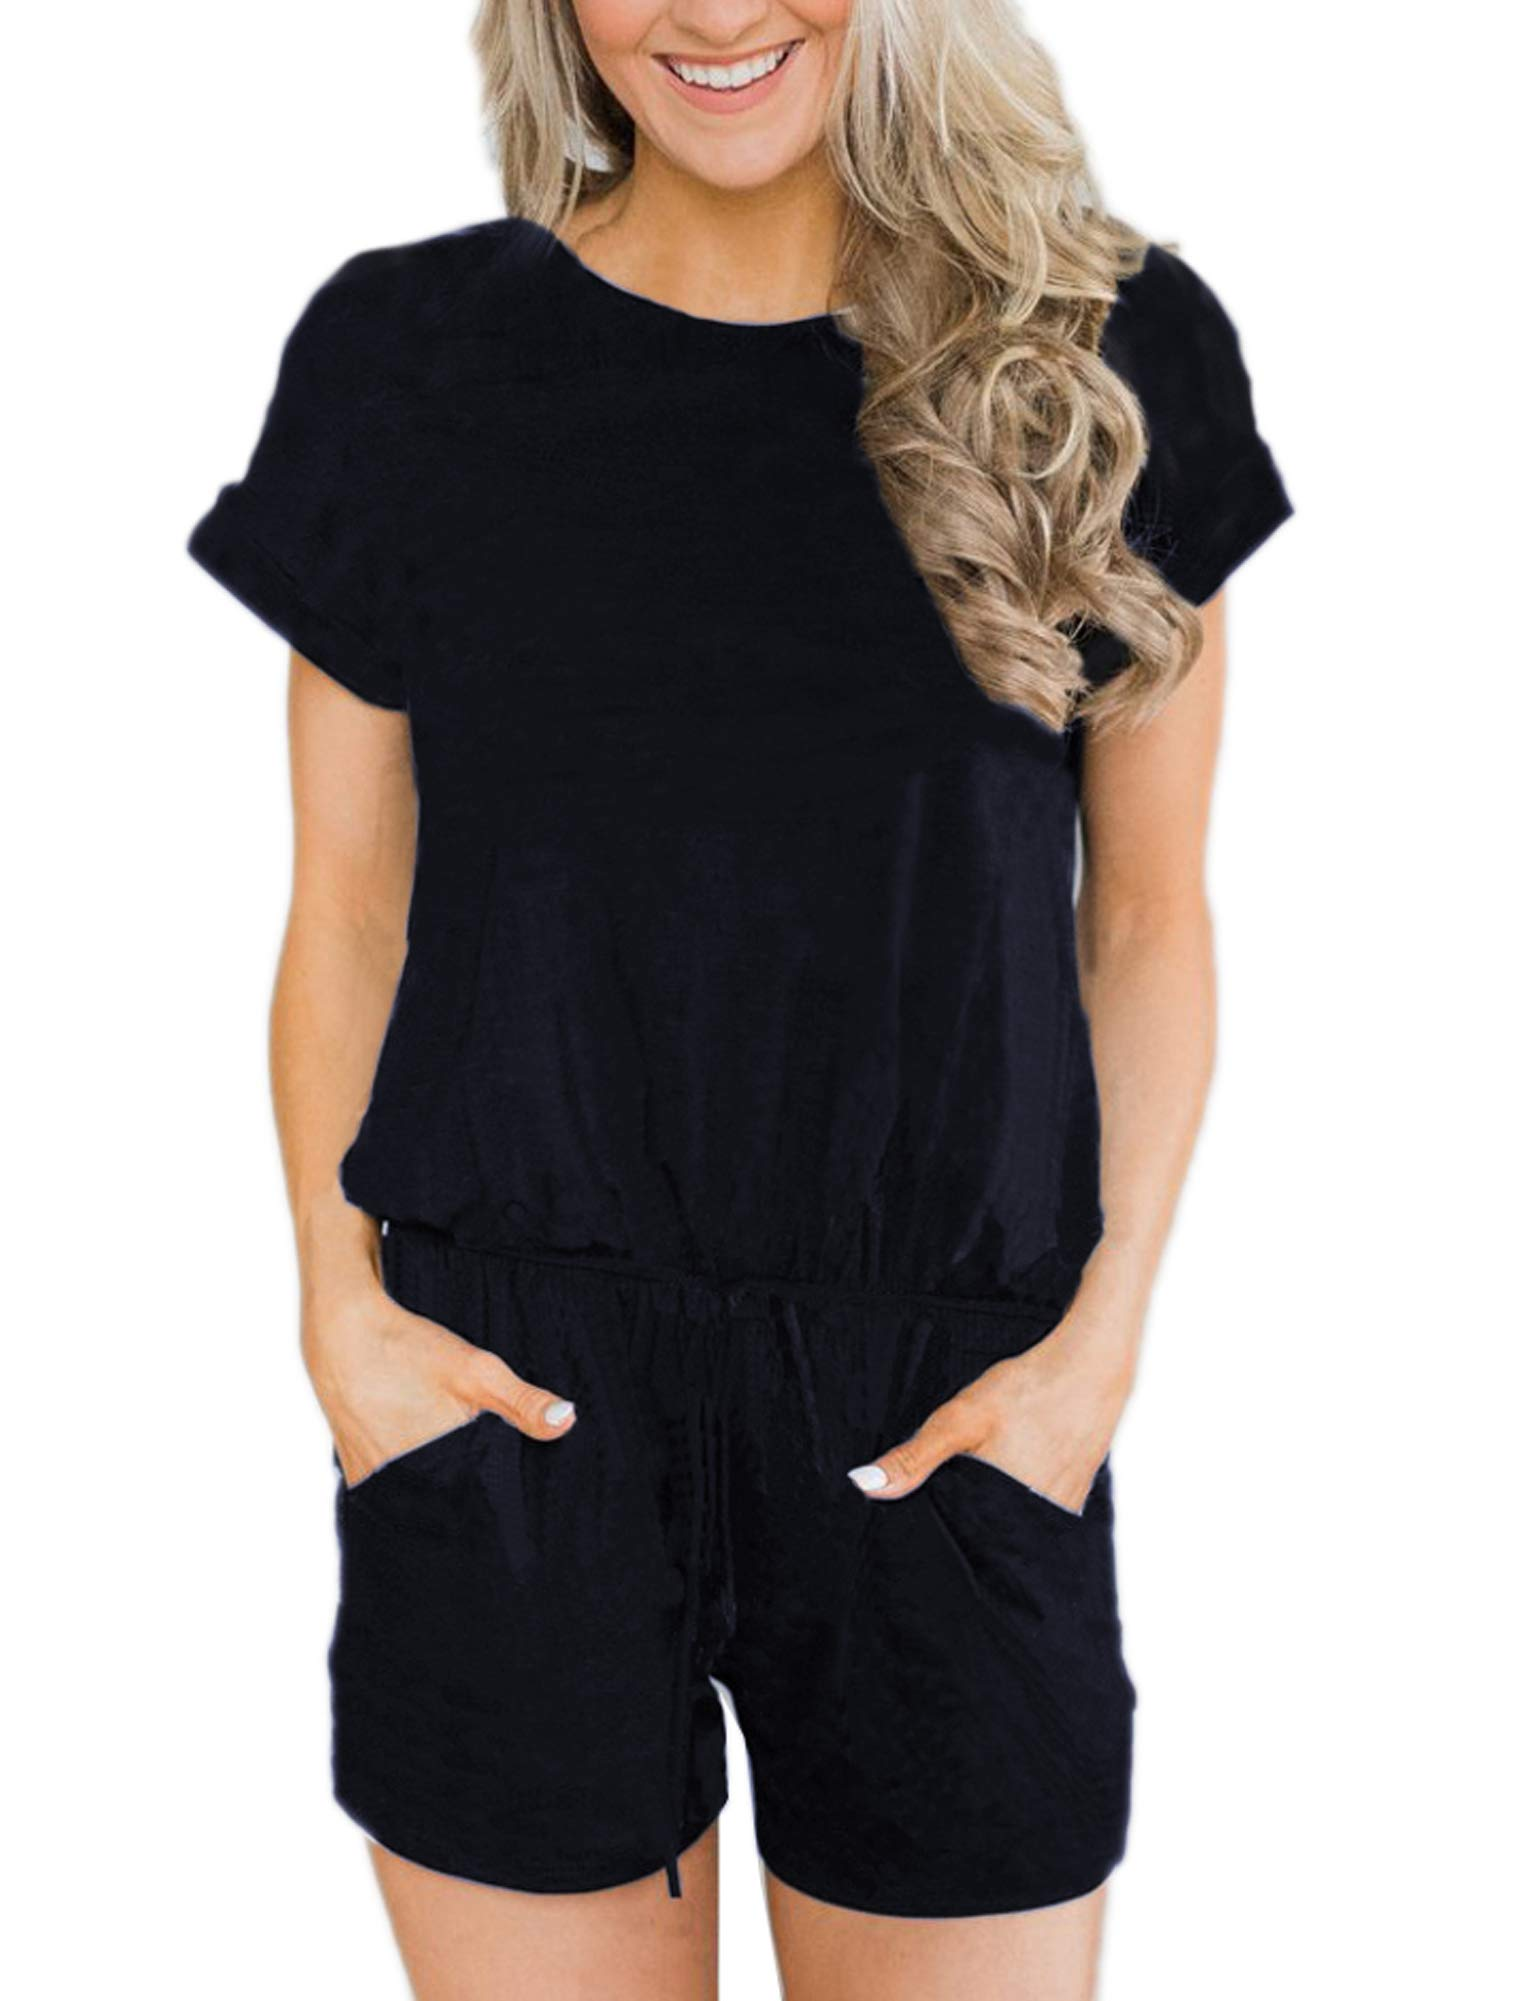 ANRABESS Women's Summer Solid Jumpsuit Casual Loose Short Sleeve Jumpsuit Rompers with Pockets Elastic Waist Playsuit Black-M BYF-33 by ANRABESS